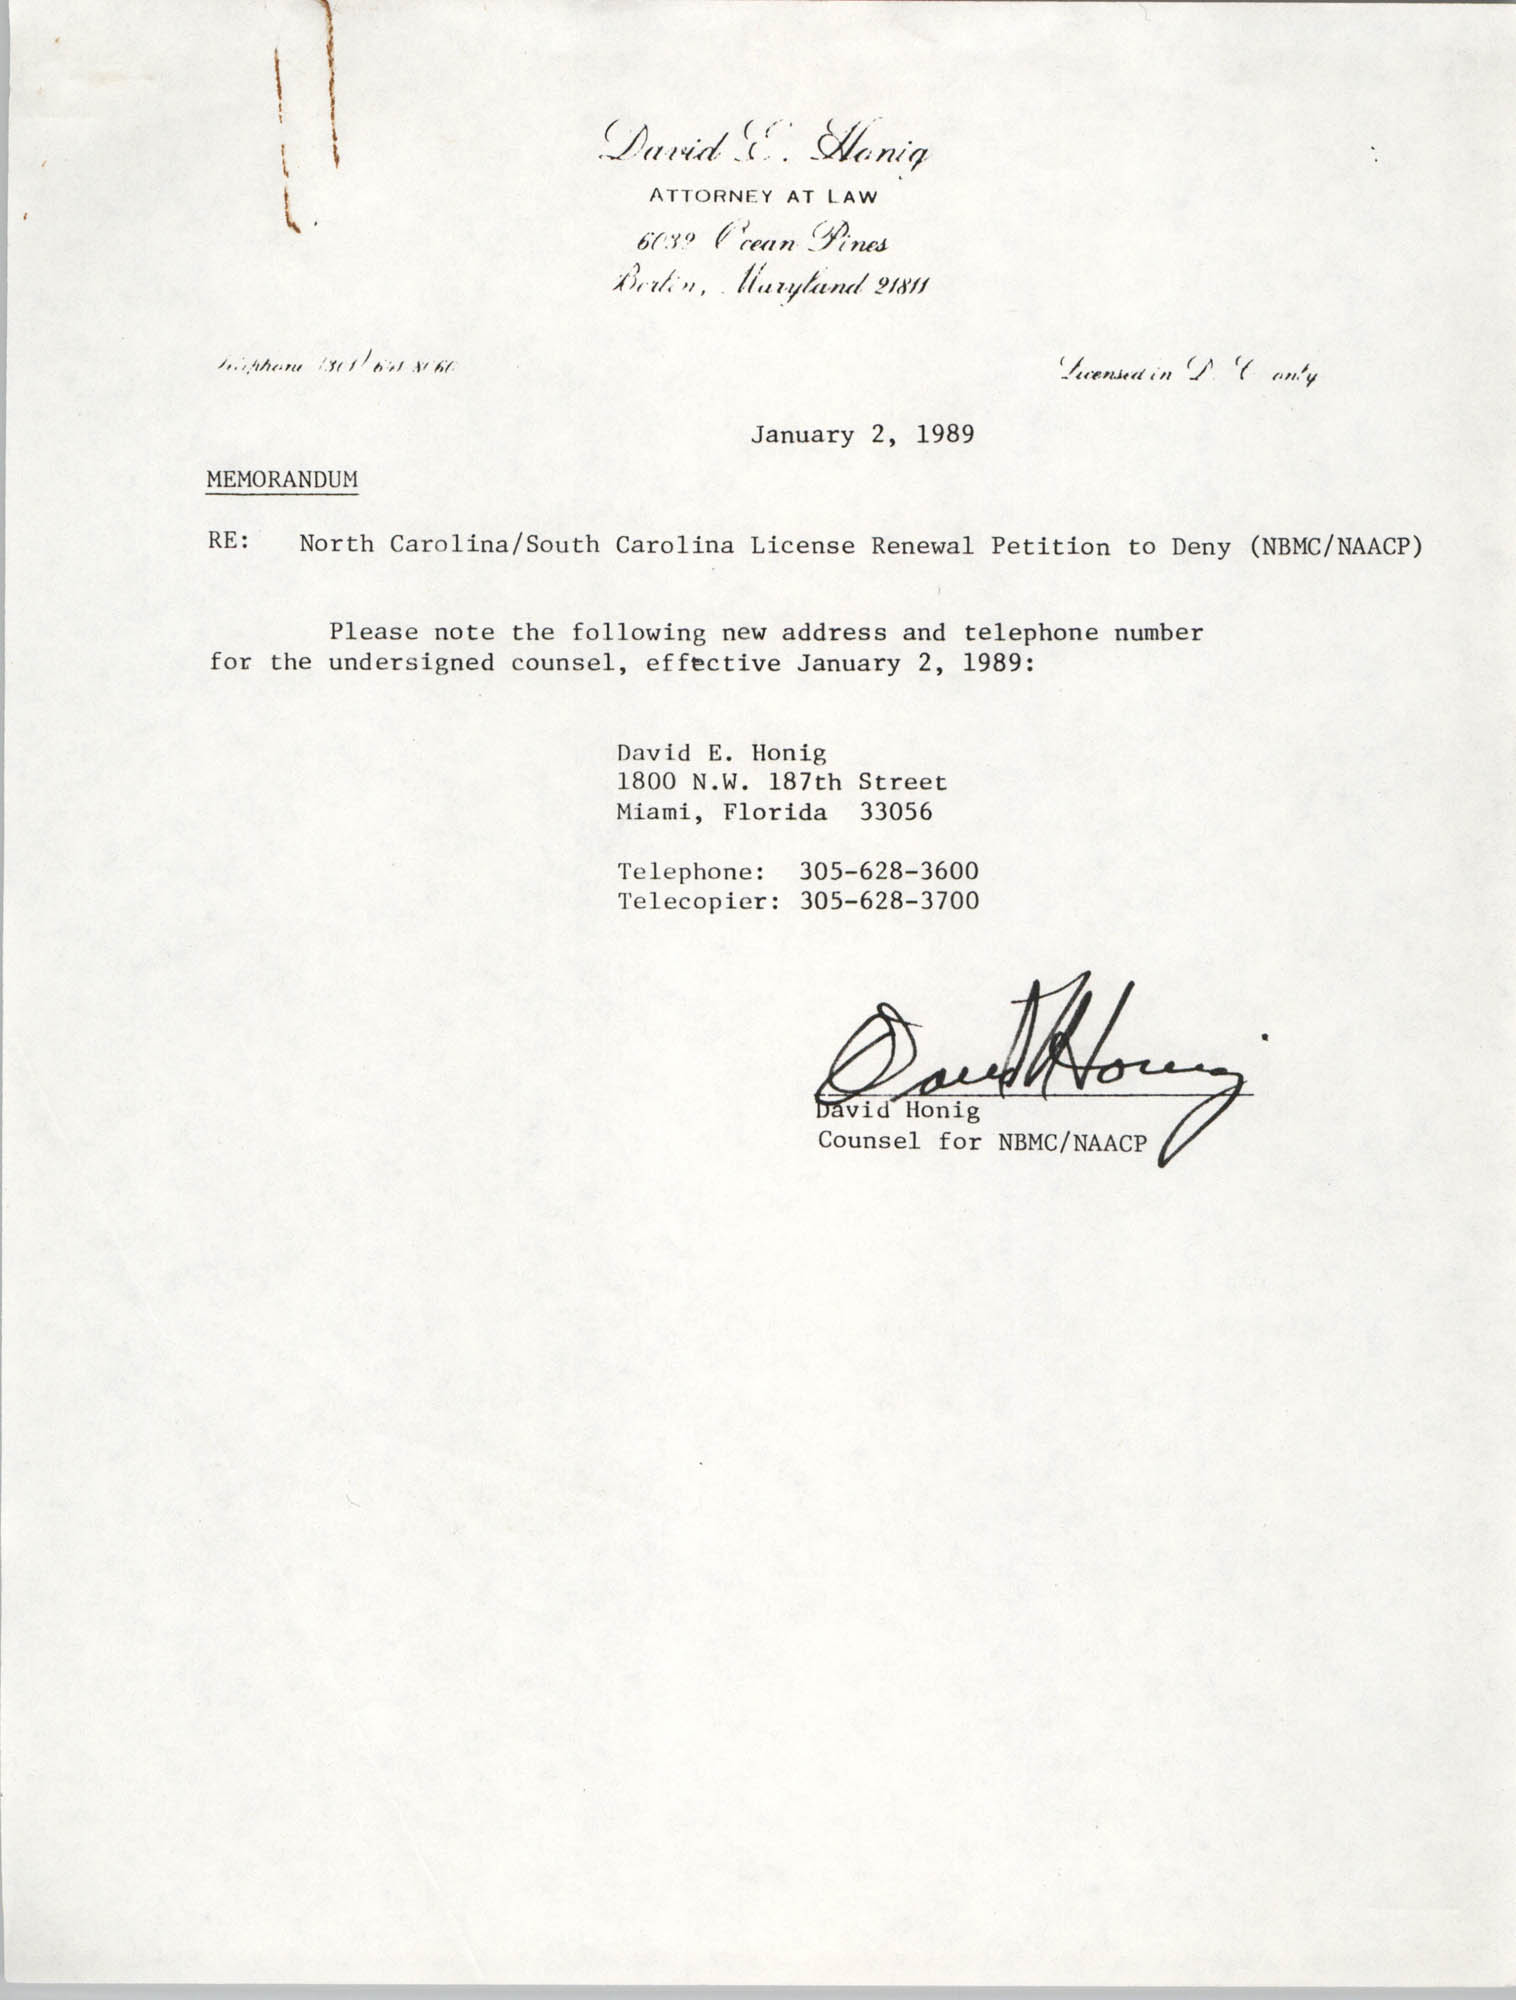 Memorandum from David Honig, January 2, 1989